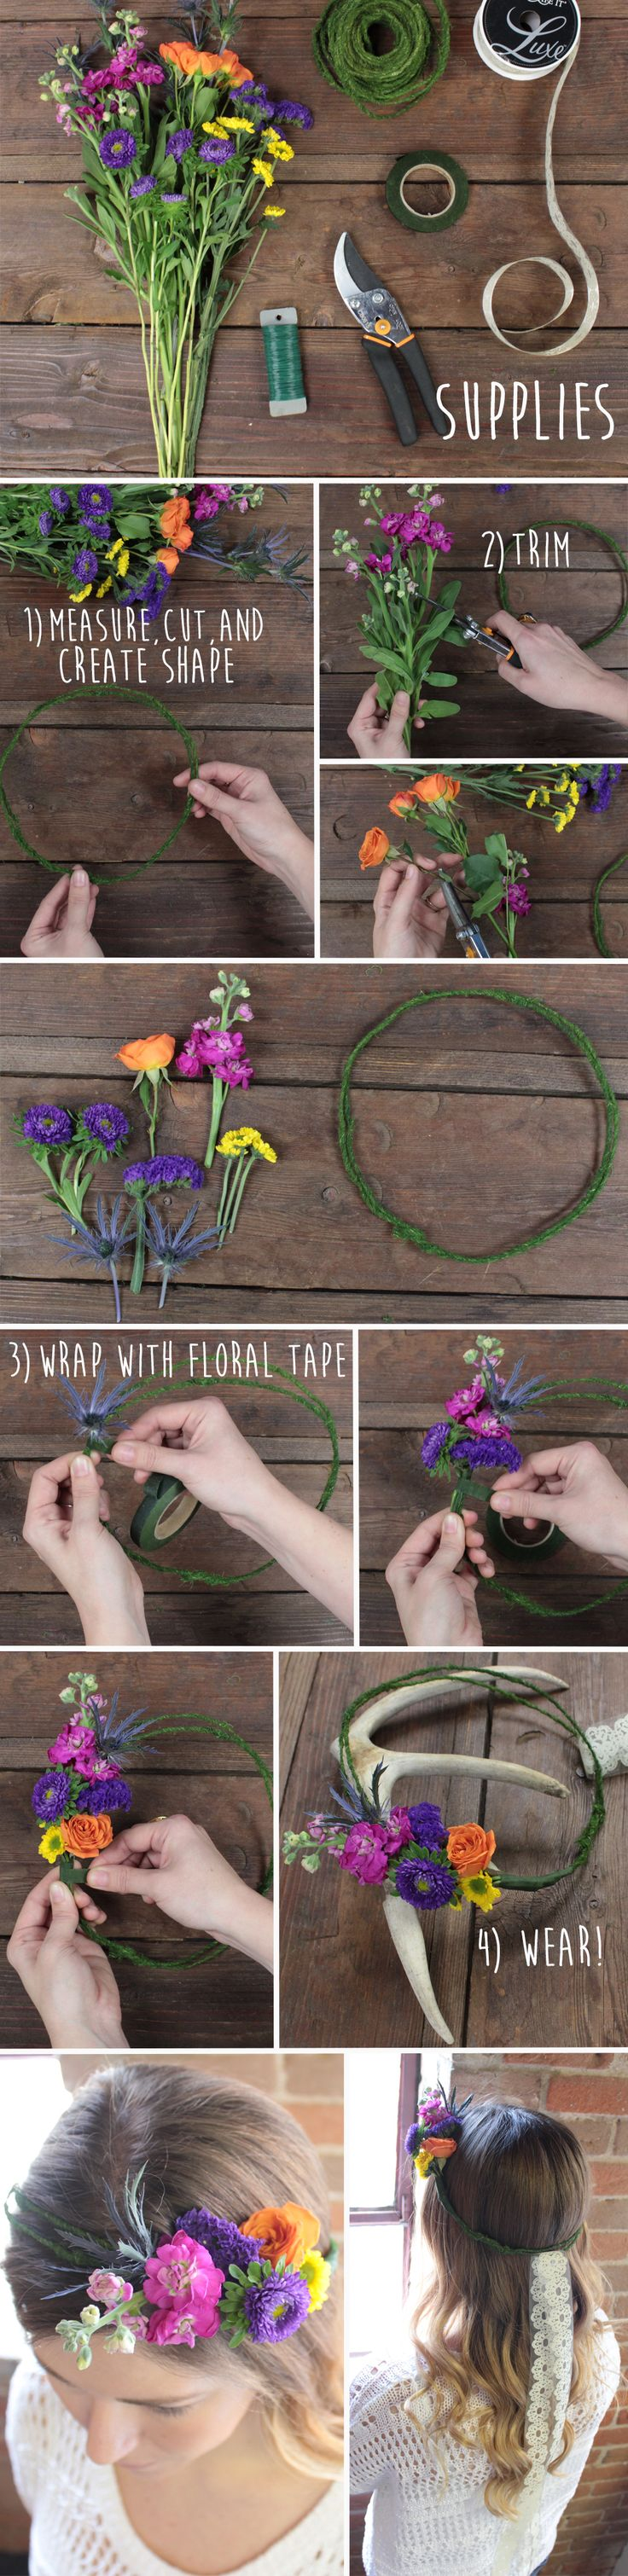 DIYing a flower crown couldn't be easier! Check out the blog post for more info - FiftyFlowers.com